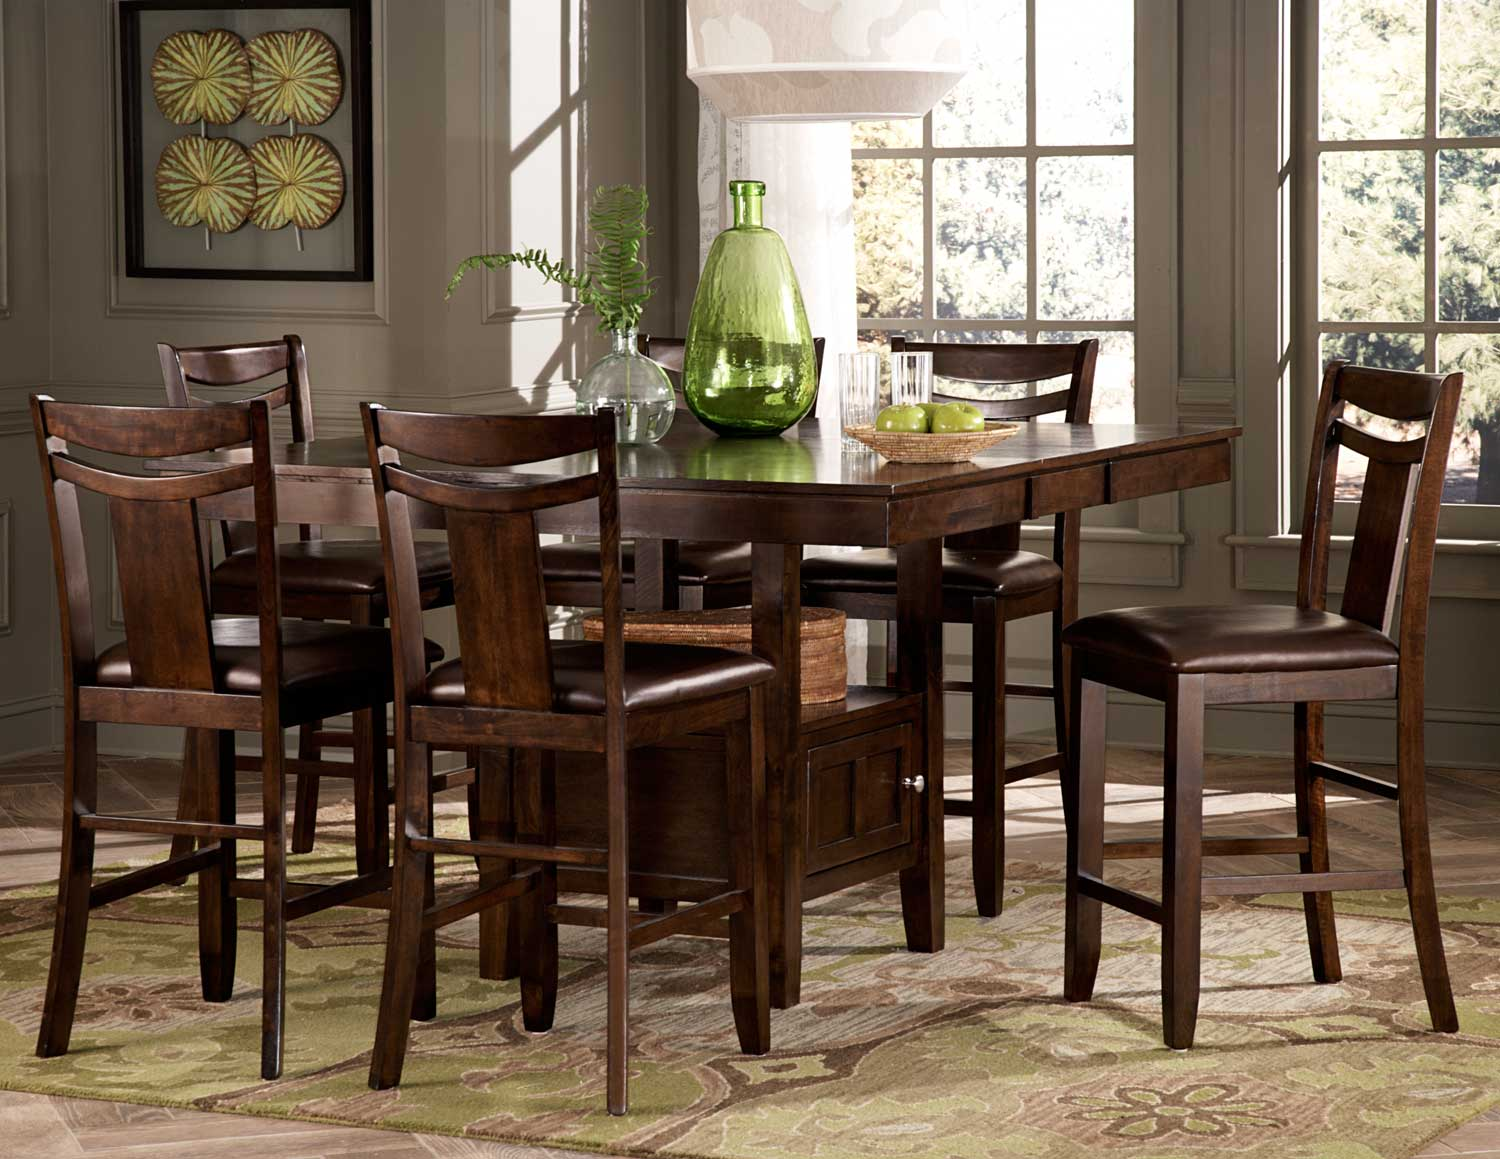 Homelegance broome counter height dining set dark brown for Counter height dining set